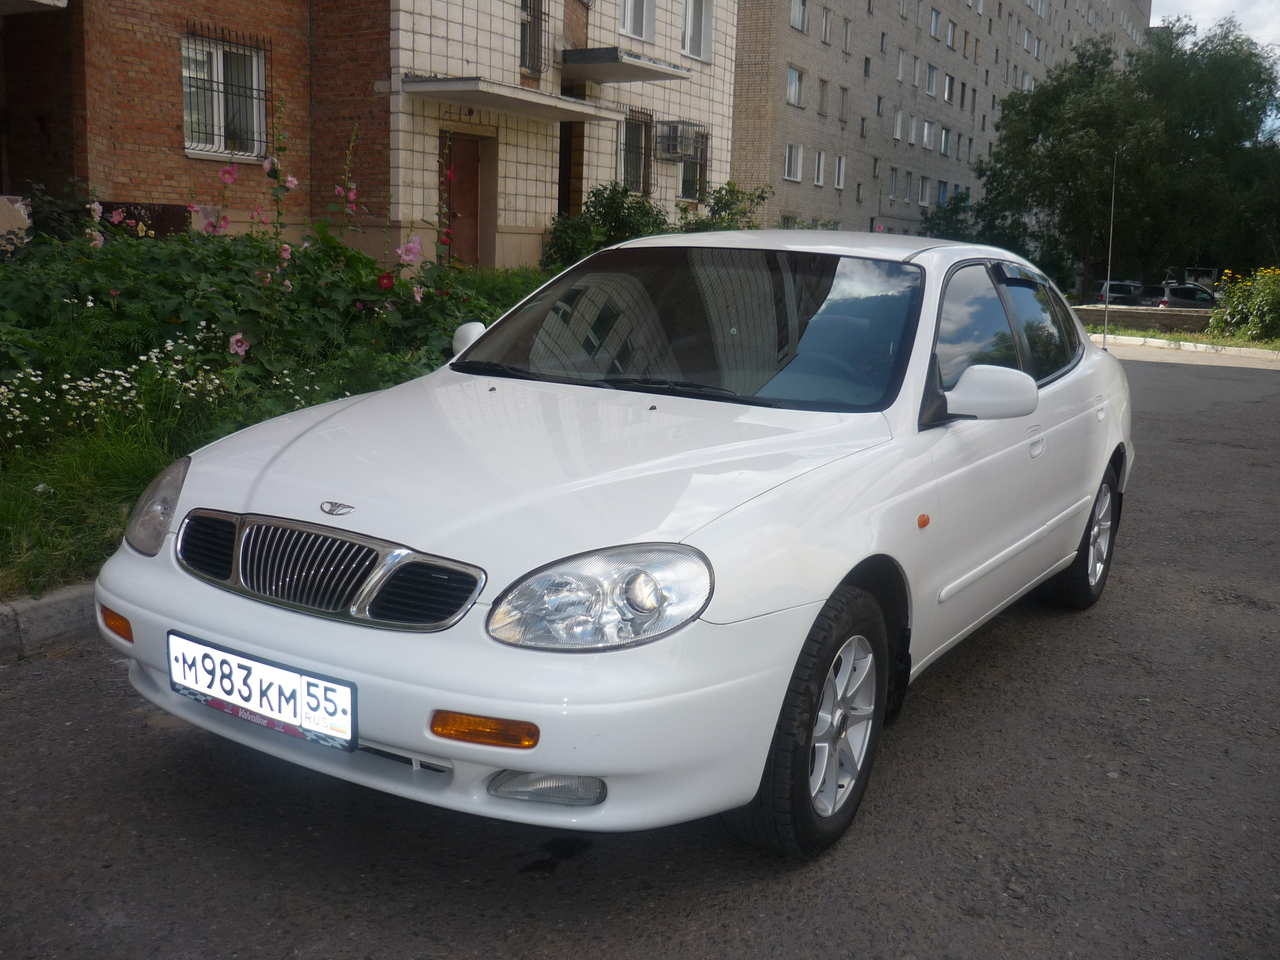 2000 Daewoo Leganza - Information and photos - ZombieDrive